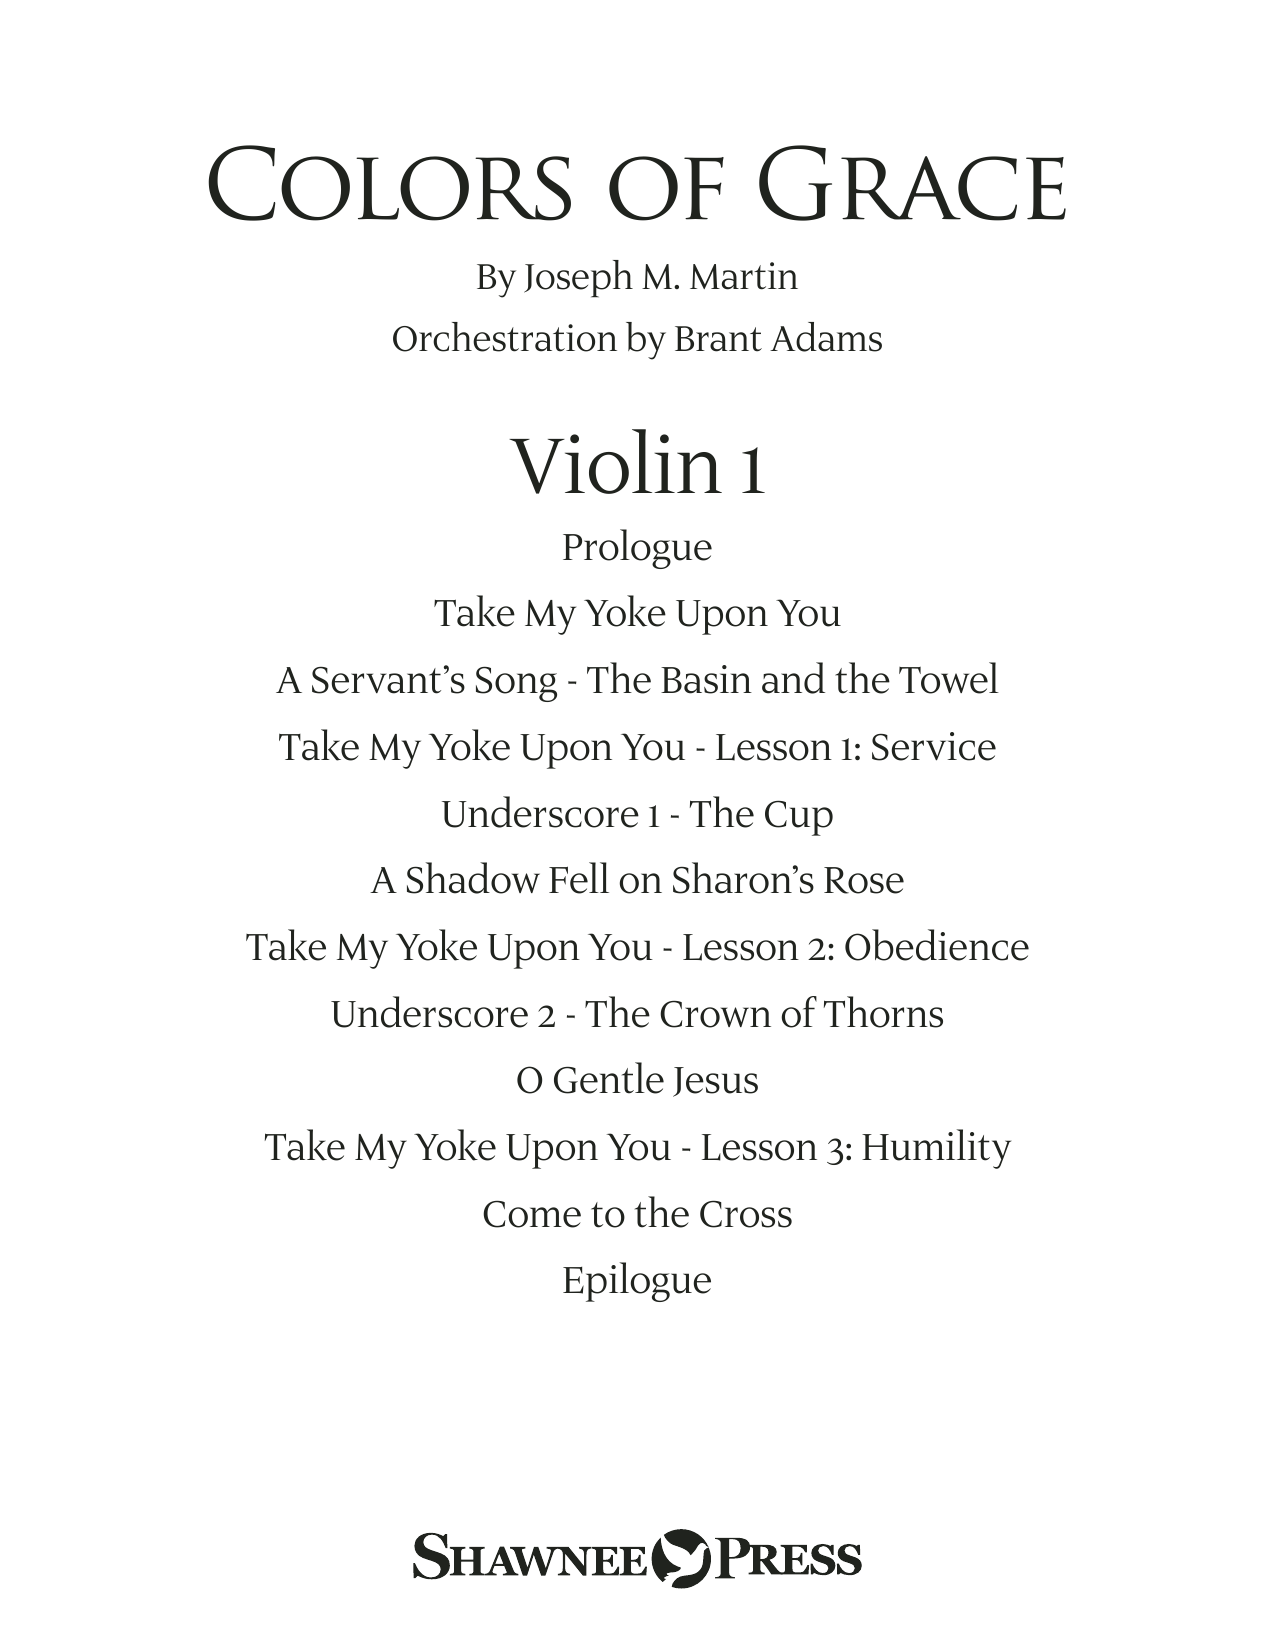 Colors of Grace - Lessons for Lent (New Edition) (Orchestra Accompaniment) - Violin 1 (Choir Instrumental Pak)